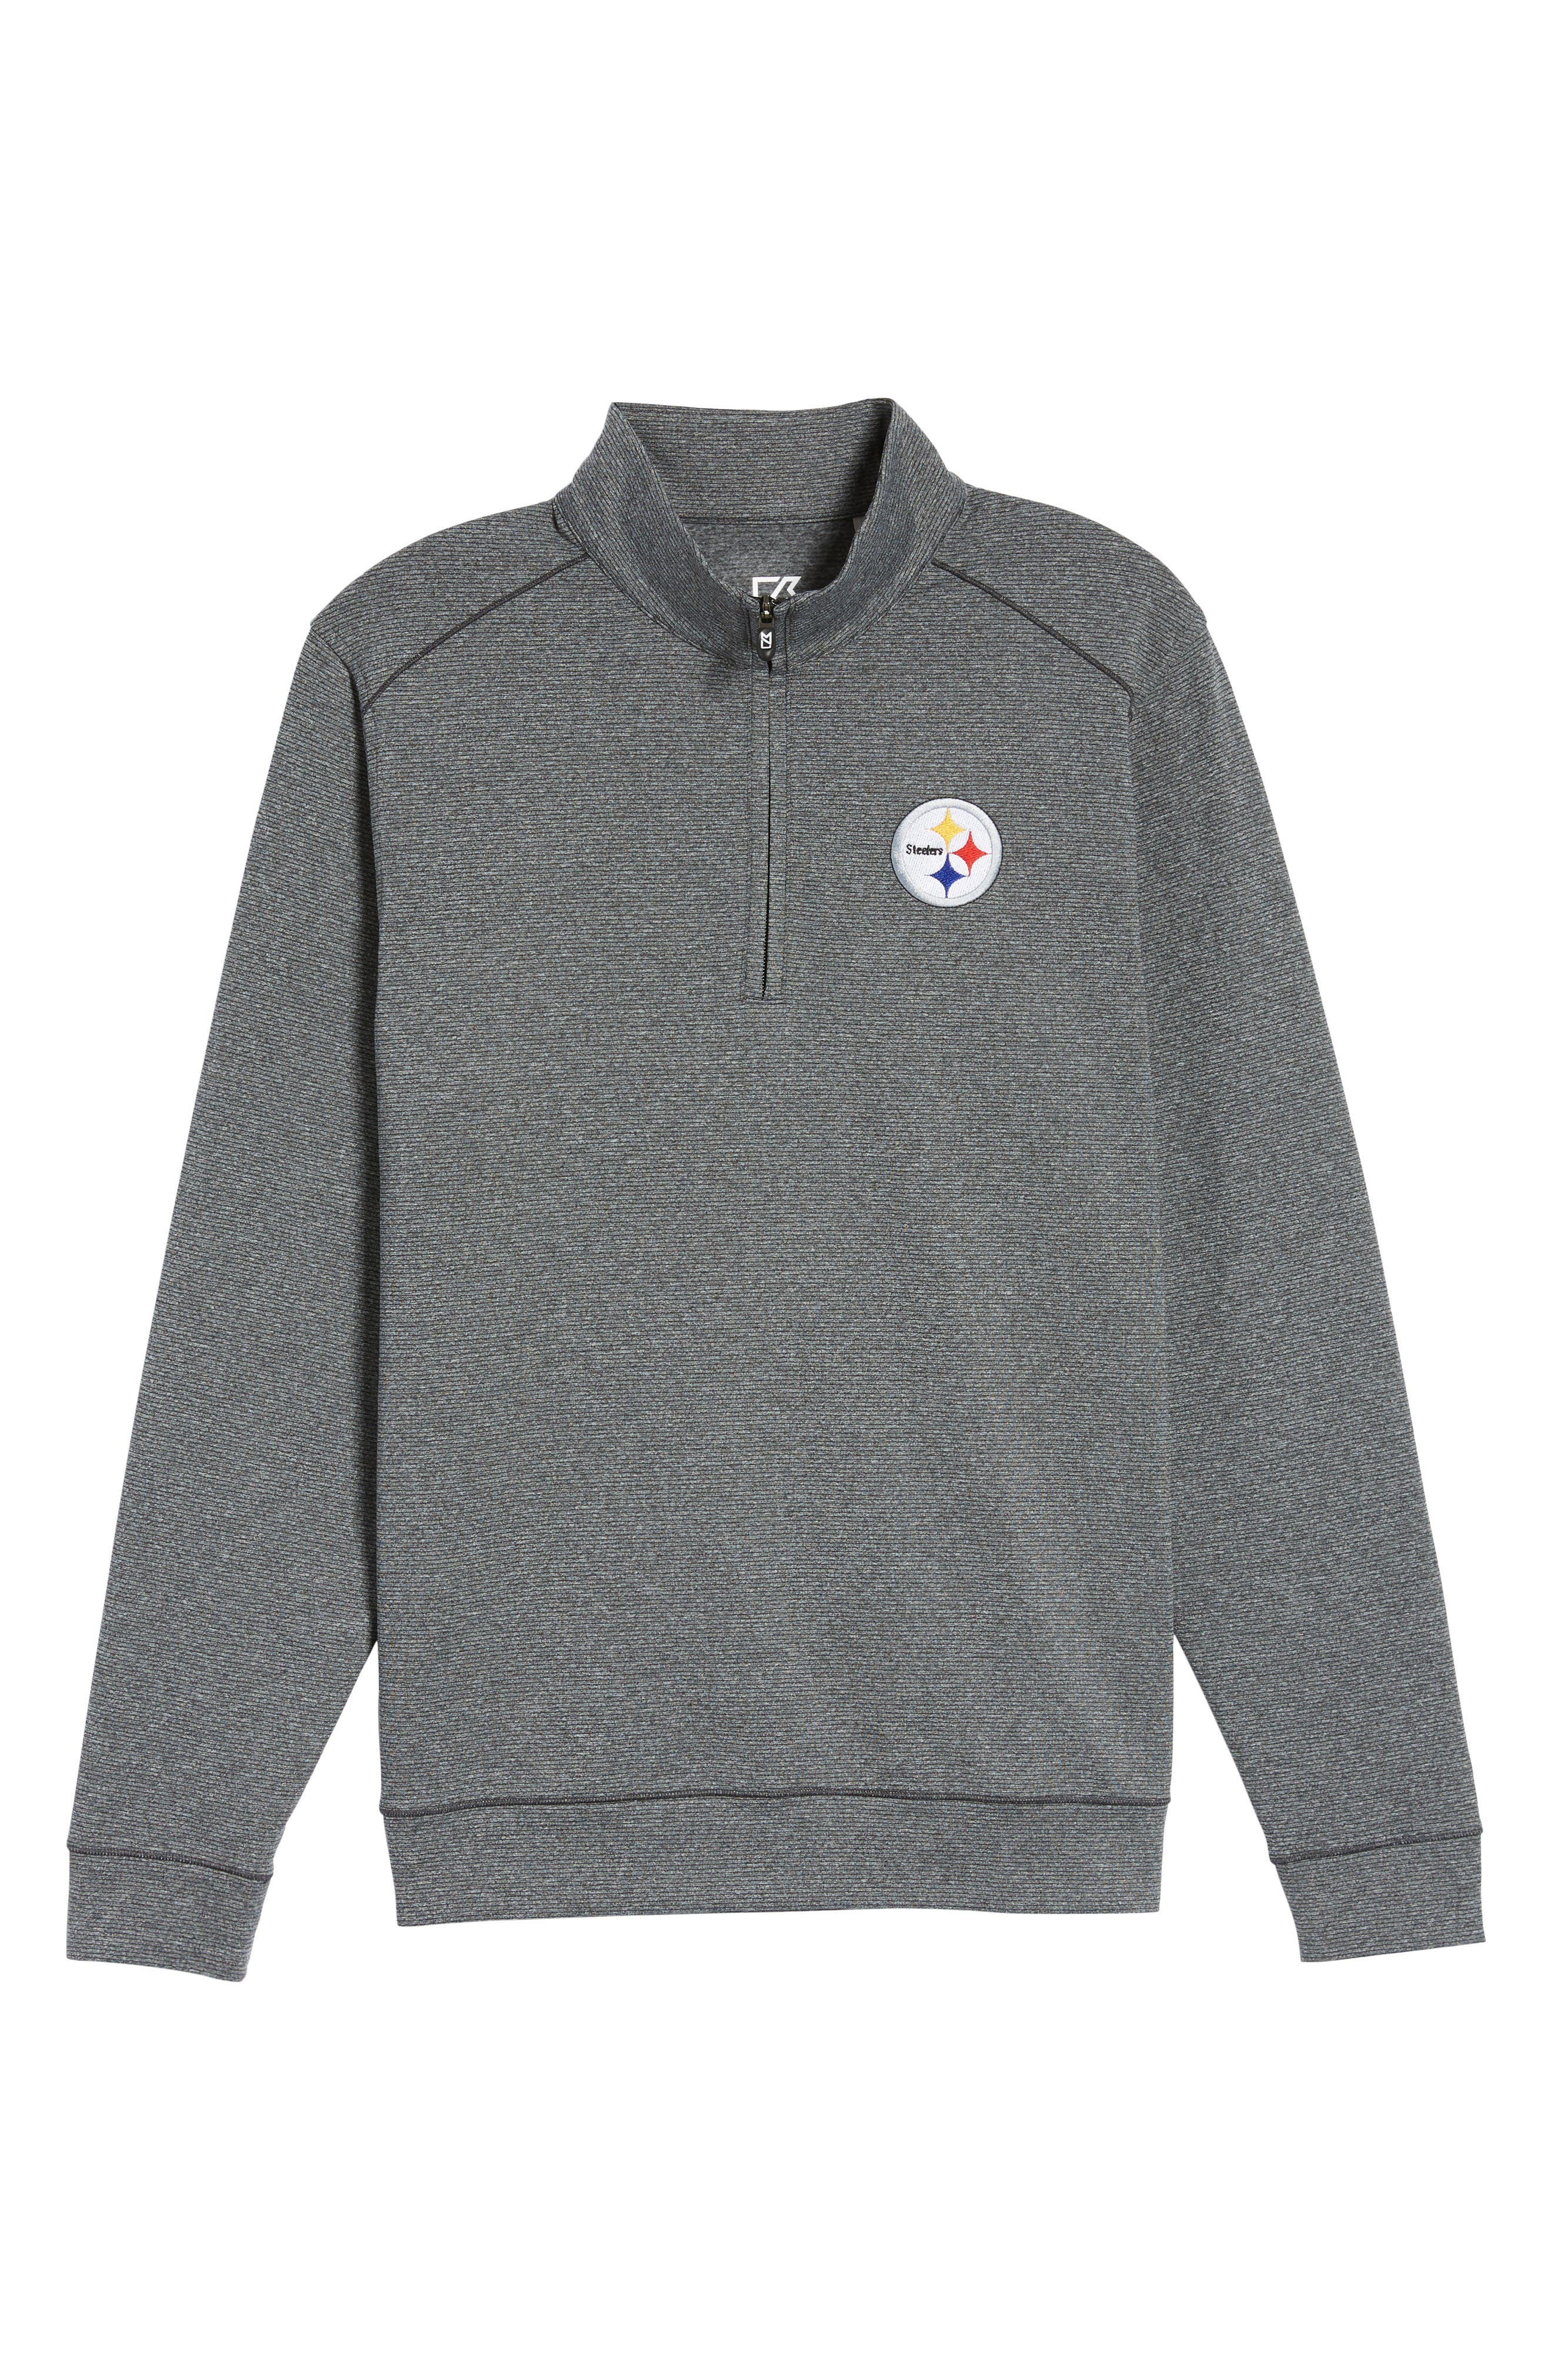 Shoreline - Pittsburgh Steelers Half Zip Pullover,                             Alternate thumbnail 6, color,                             Charcoal Heather